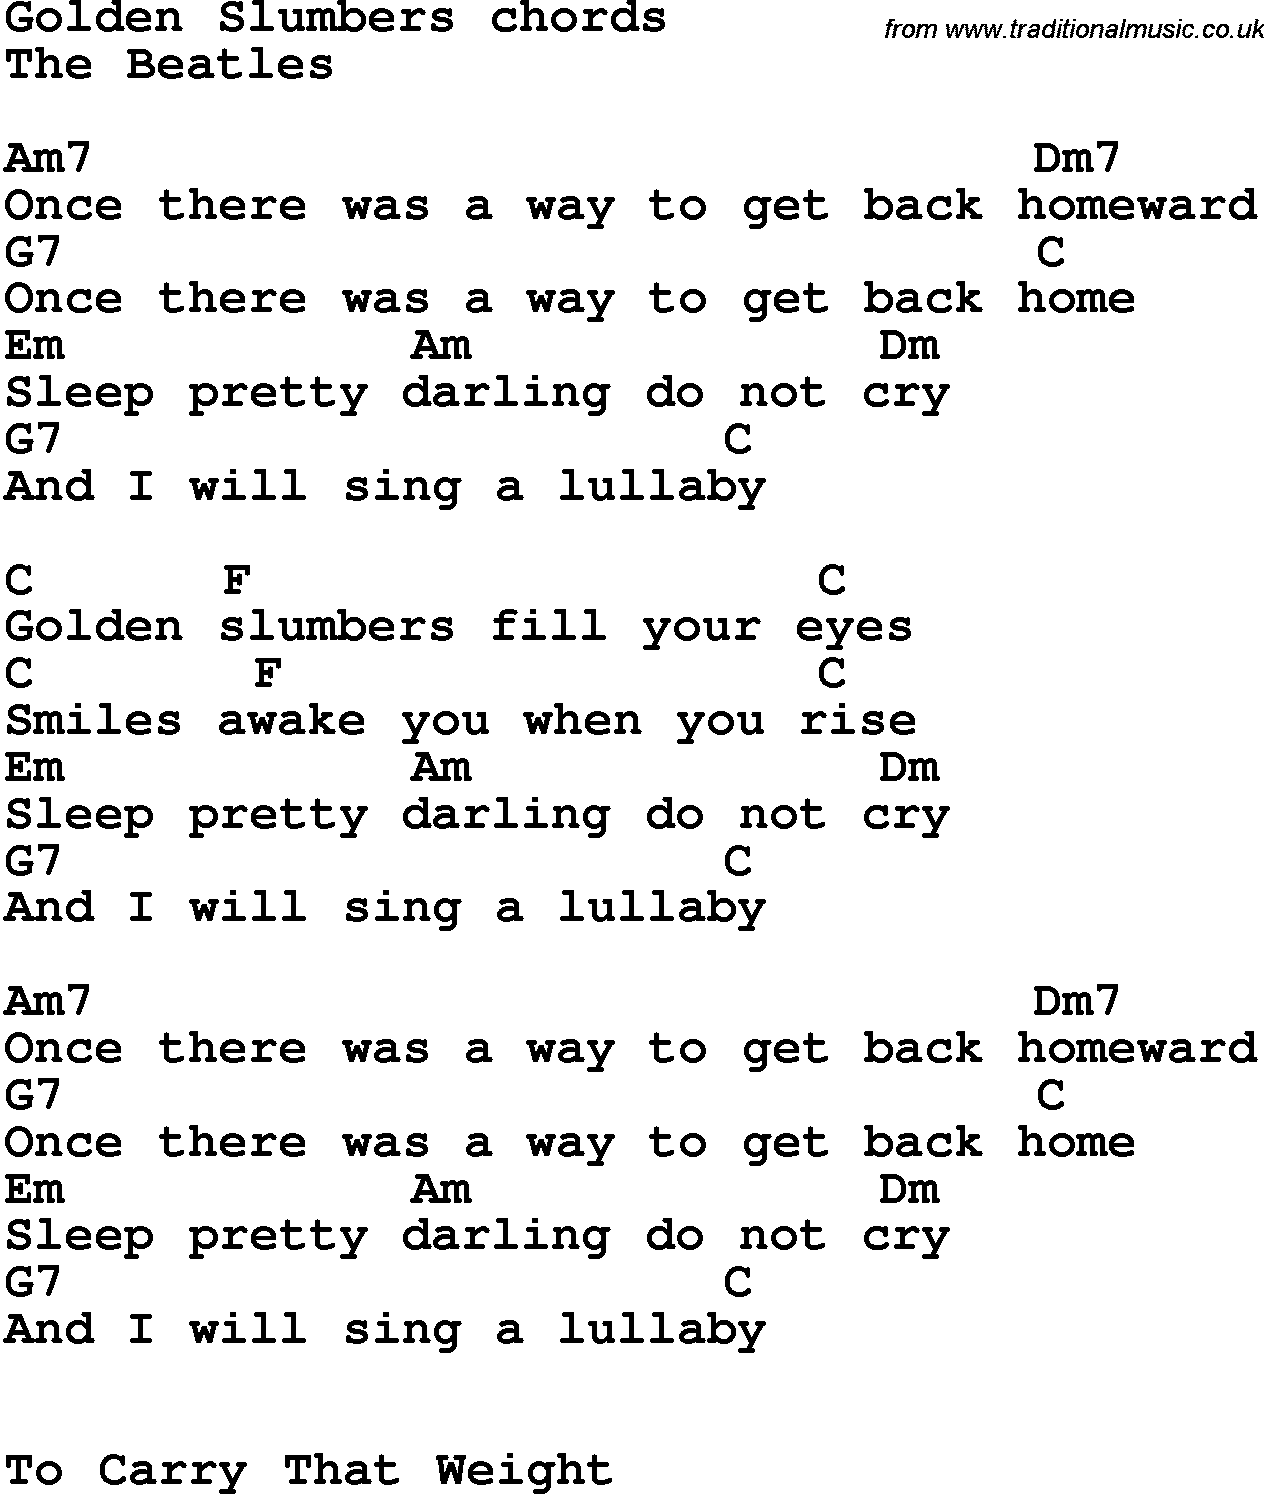 Song lyrics with guitar chords for Golden Slumbers   The Beatles